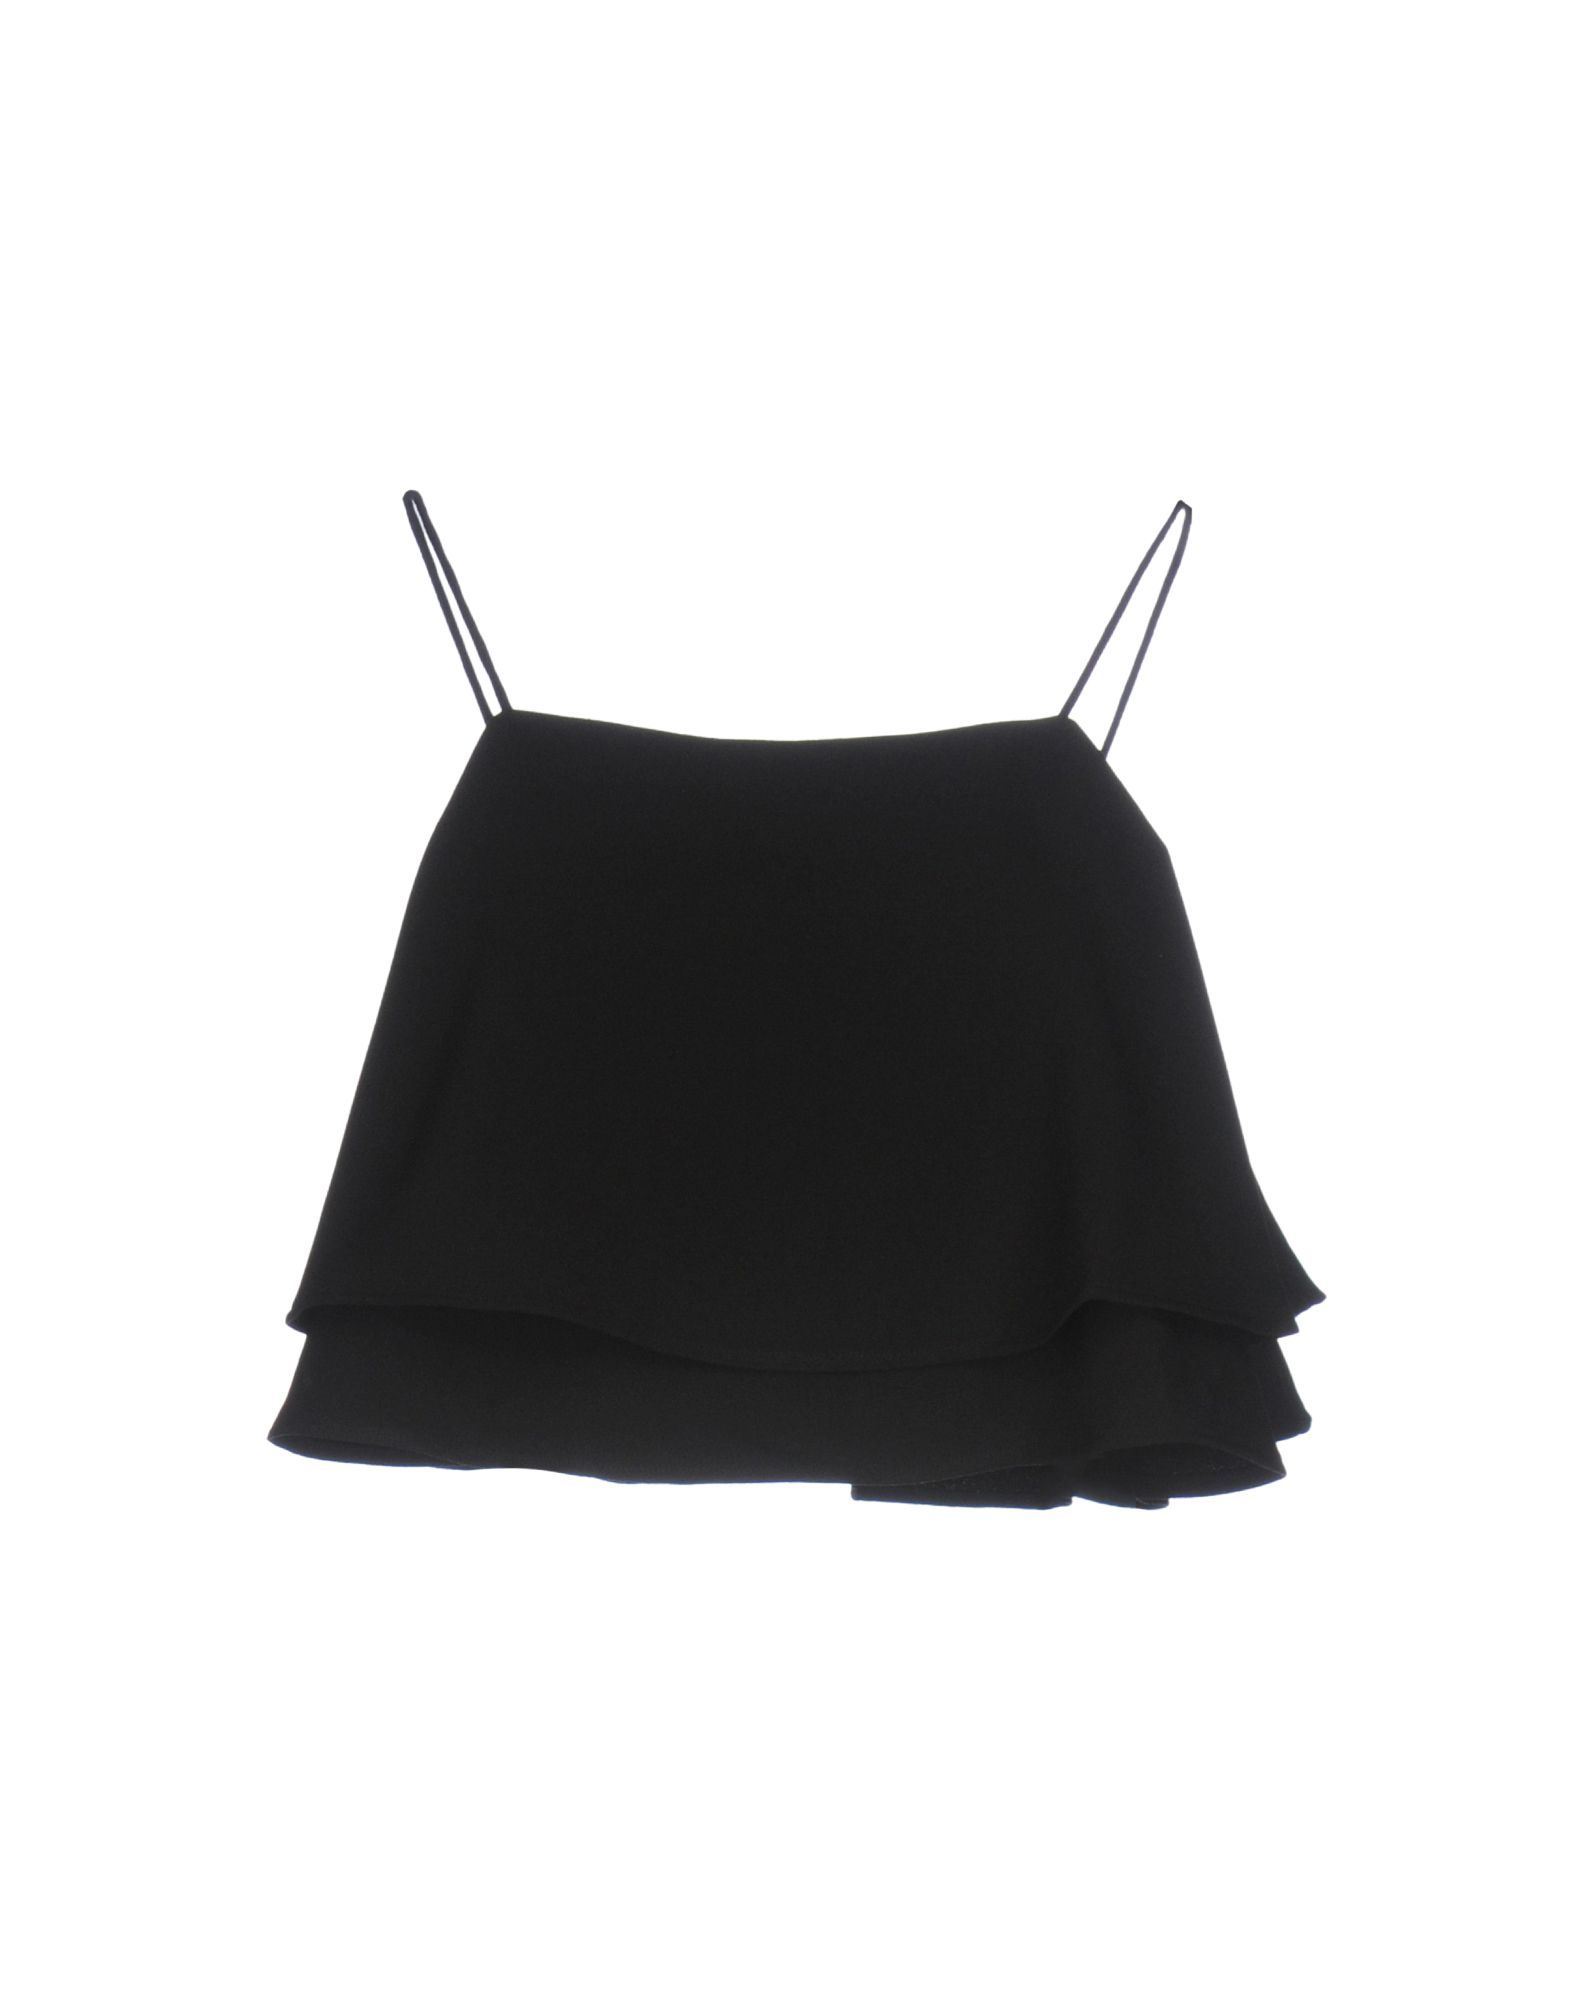 Finders Keepers Black Camisole